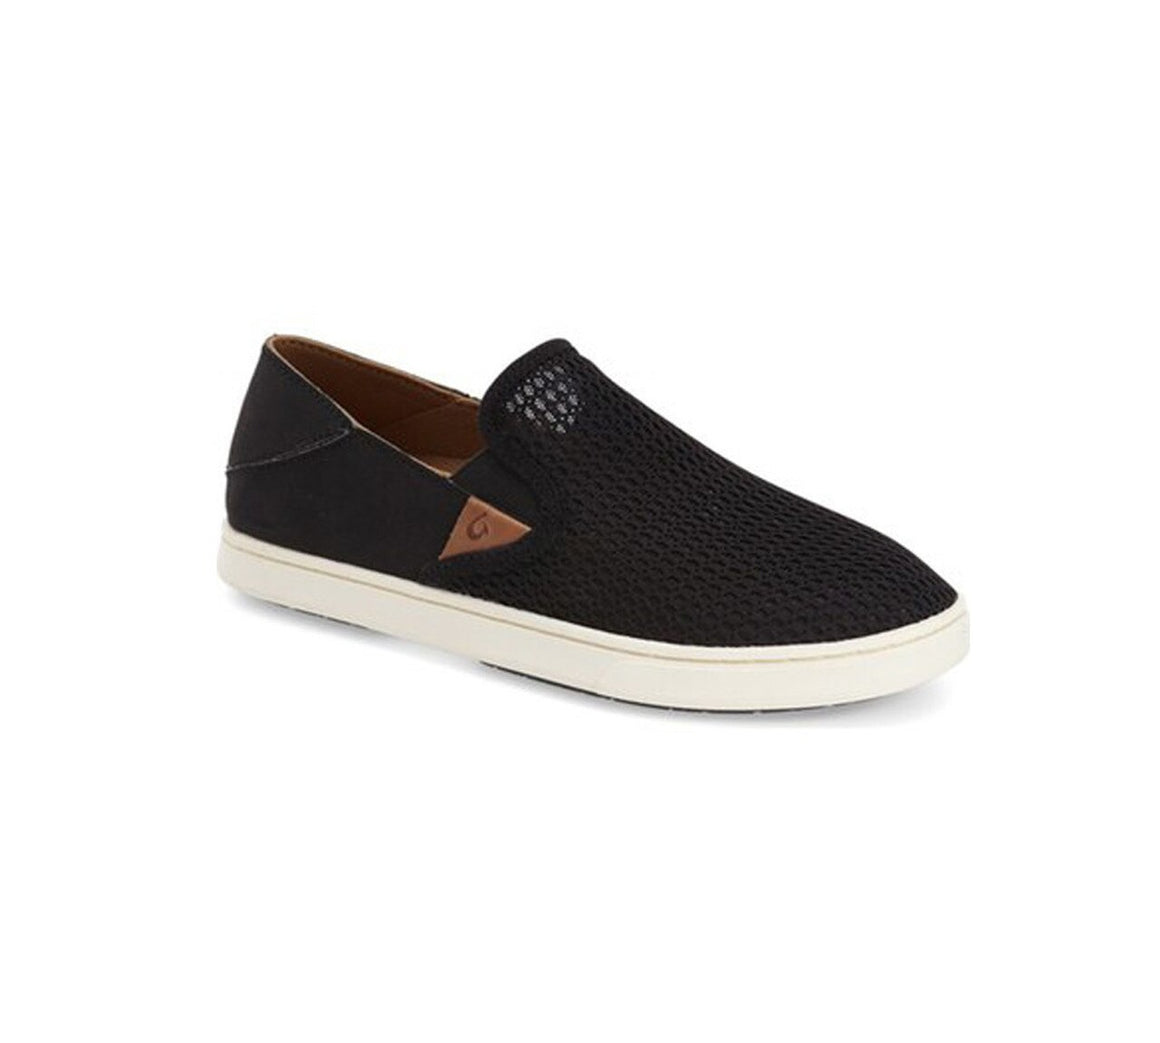 Olukai Women's Pehuea Mesh Slip On - Black/Black 20271-4040